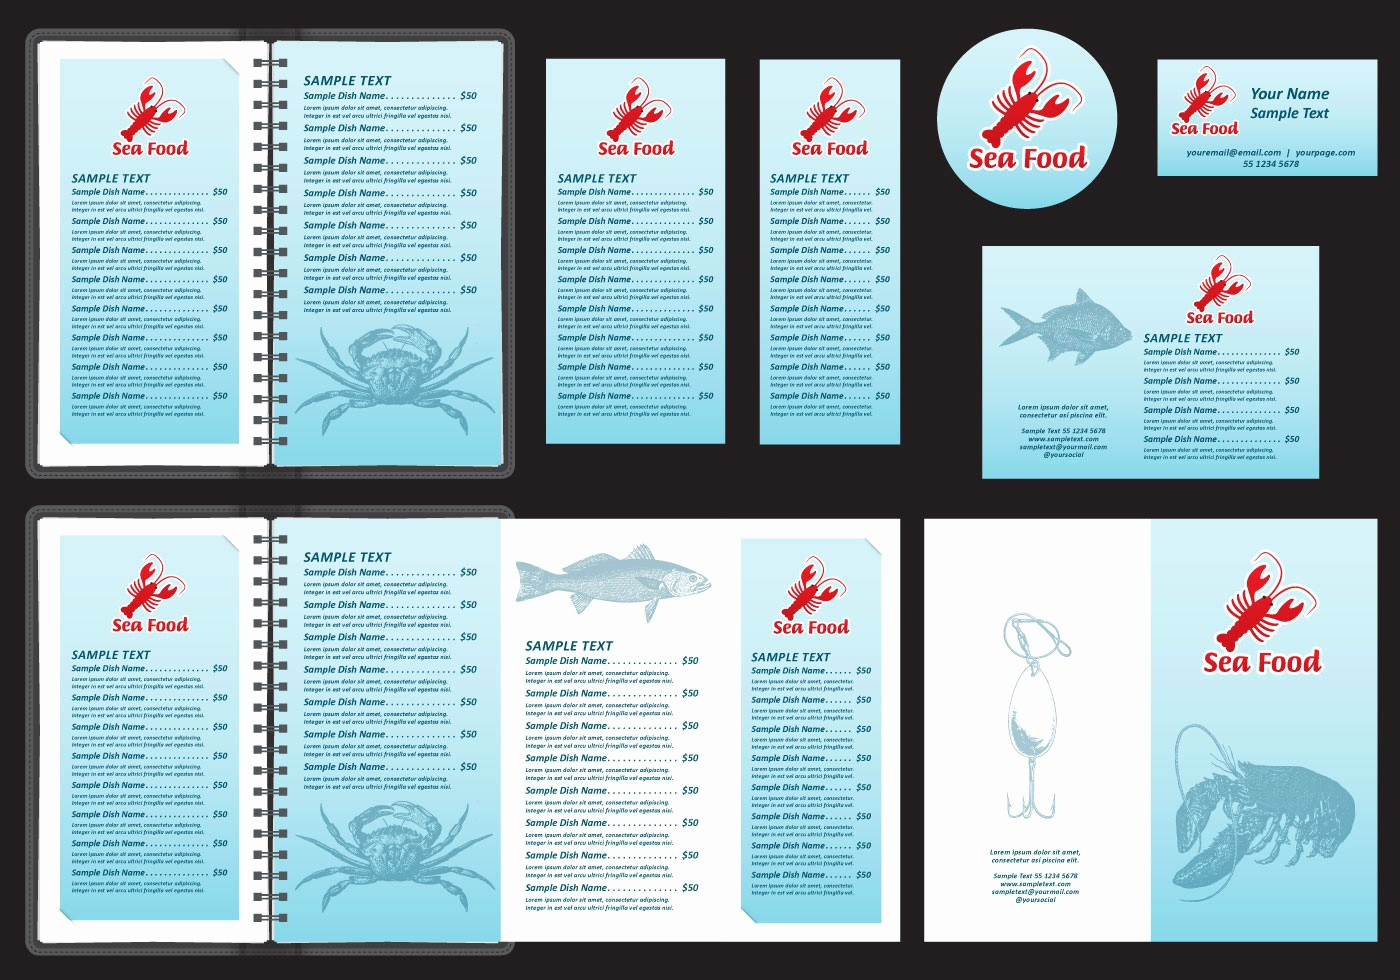 Menu Design Templates Free Download Luxury Seafood Menu Templates Download Free Vector Art Stock